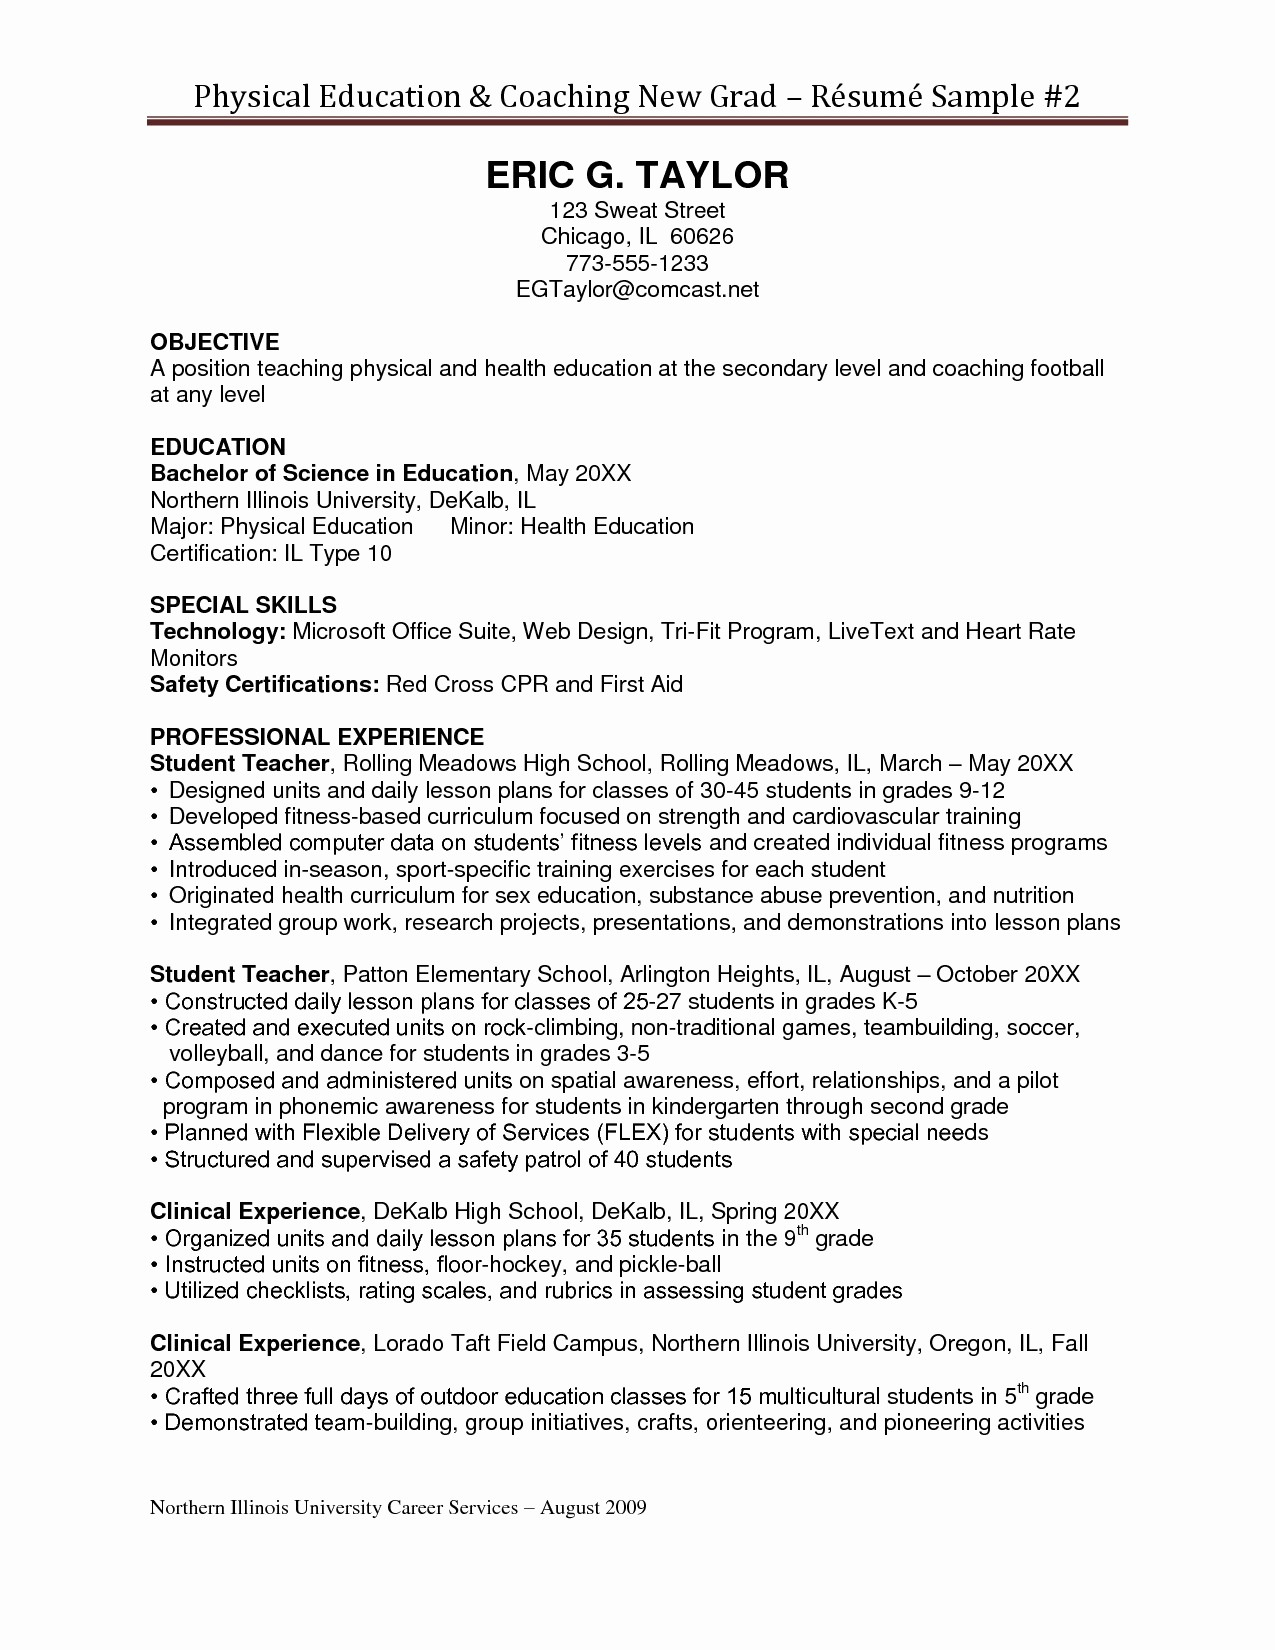 Soccer Coaching Resumes - Hockey Resume Template Save soccer Coach Resume Sample New Coaching